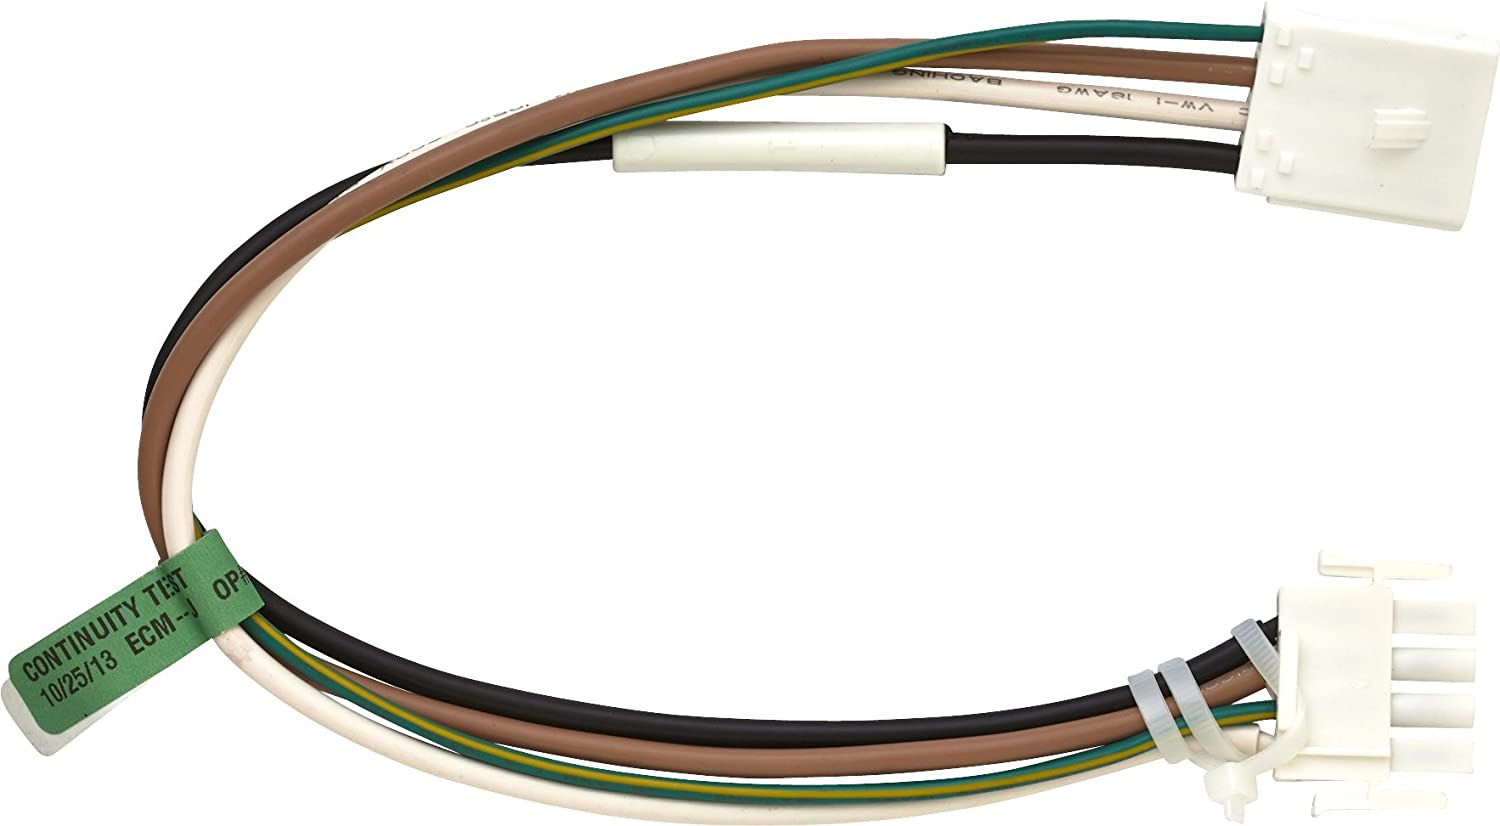 6113euQ4aCL._SL1500_ amazon com whirlpool d7813010 harness icemaker home improvement ice maker wiring harness maytag at virtualis.co